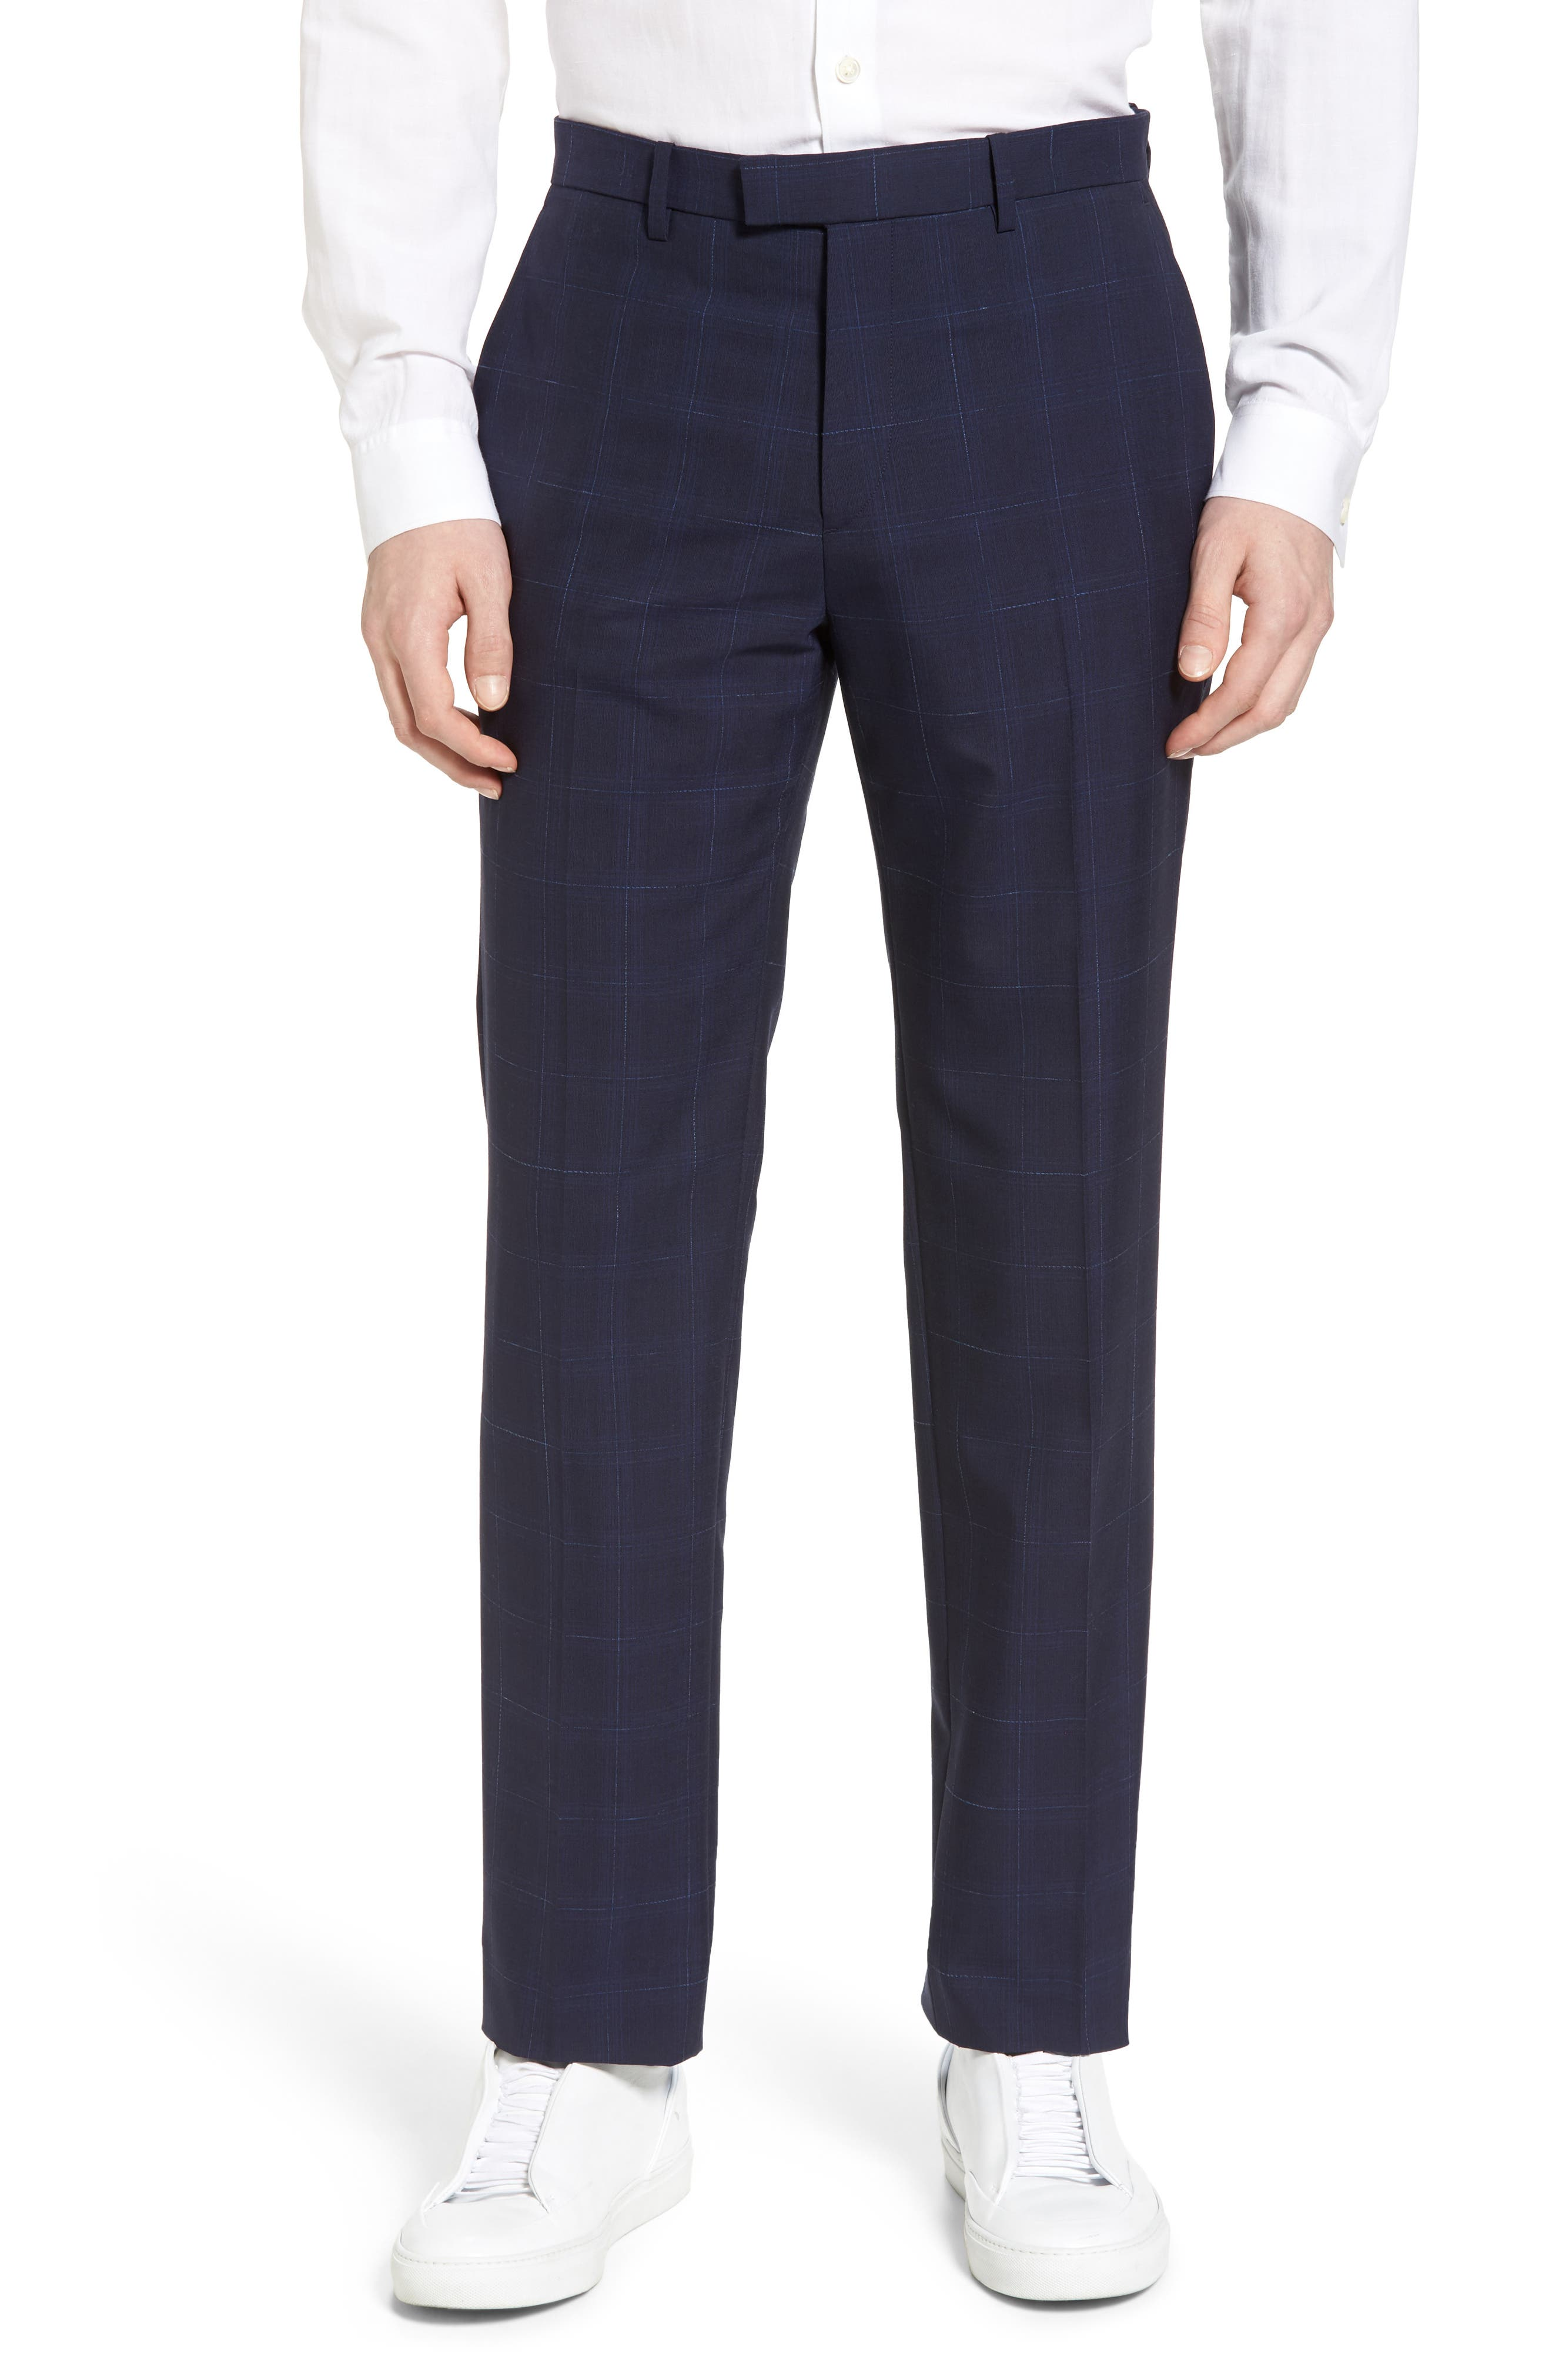 Marlo Flat Front Plaid Wool Trousers,                             Main thumbnail 1, color,                             Eclipse